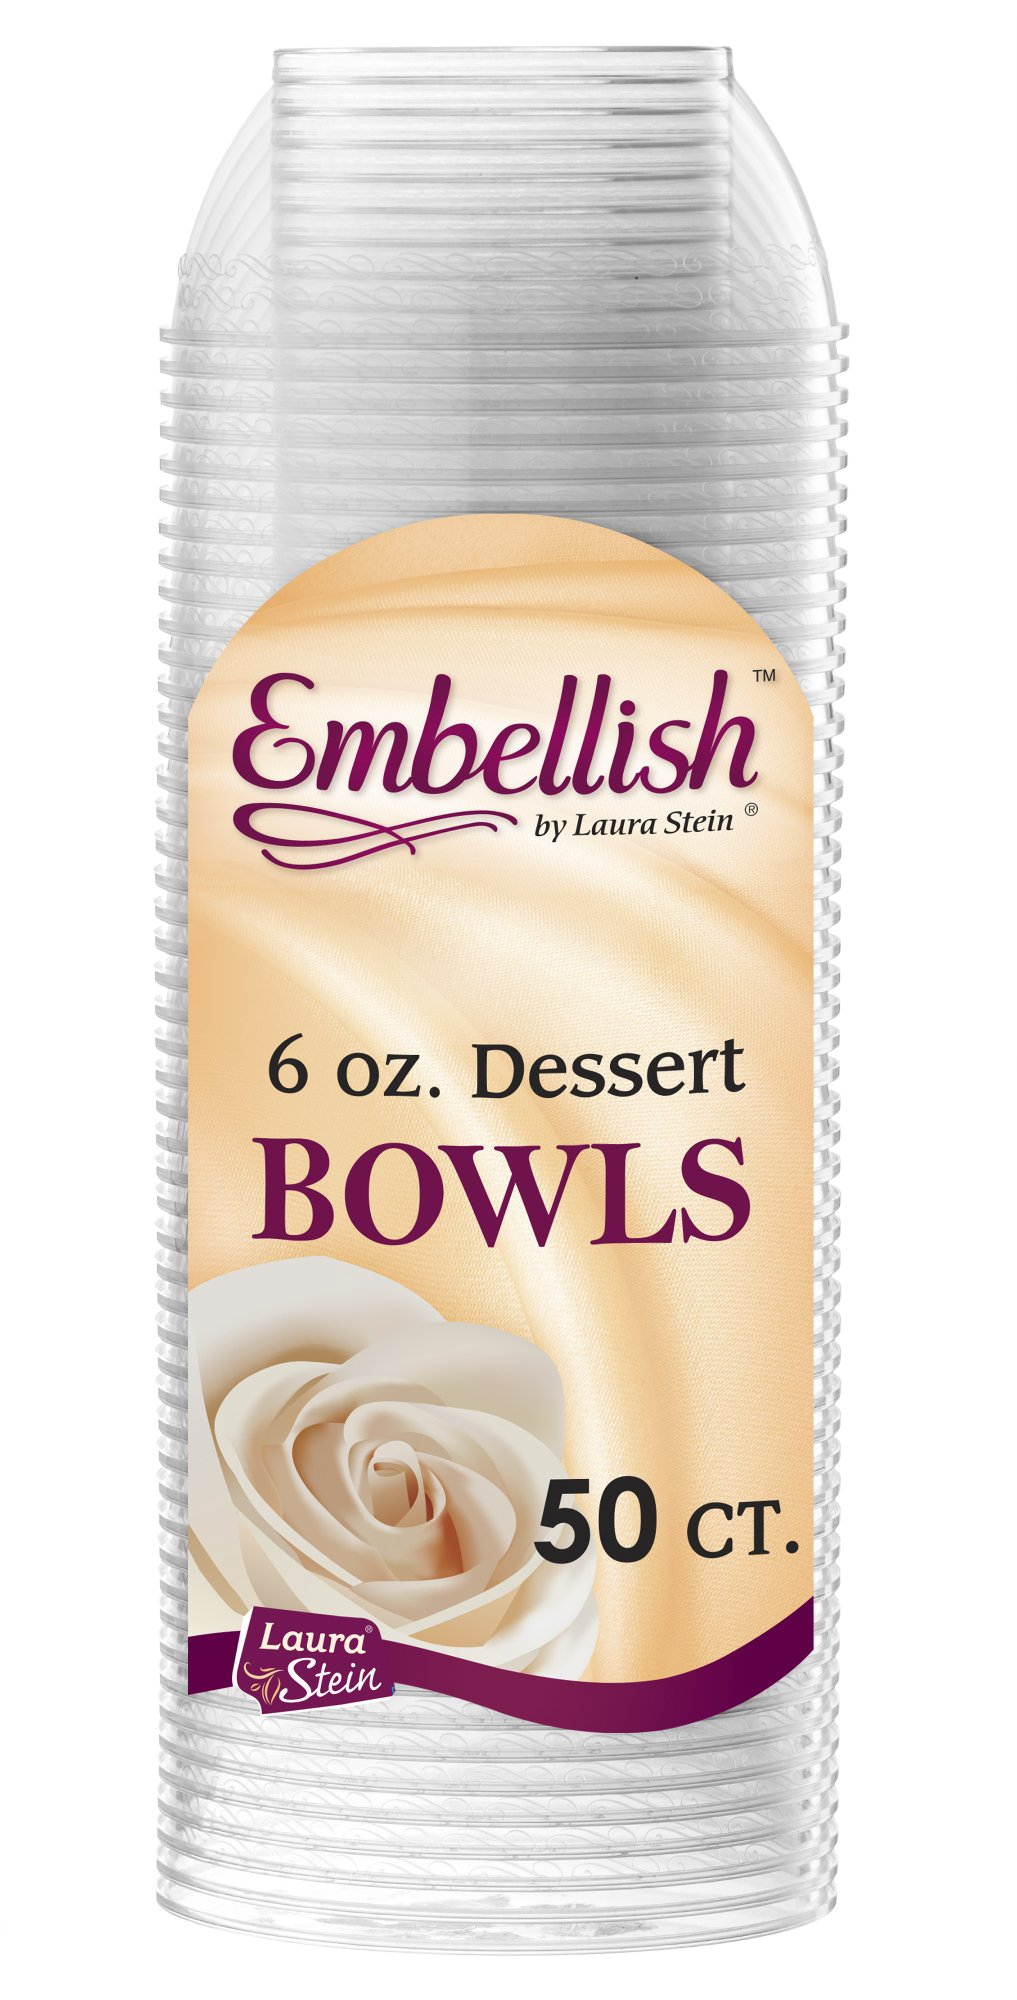 Embellish Clear Disposable Heavy Duty Plastic 6 Oz Dessert Bowls 100 Count, Ideal For Wedding, Catering, Parties, Buffets, Events, Or Everyday Use, 2 Packs by Embellish